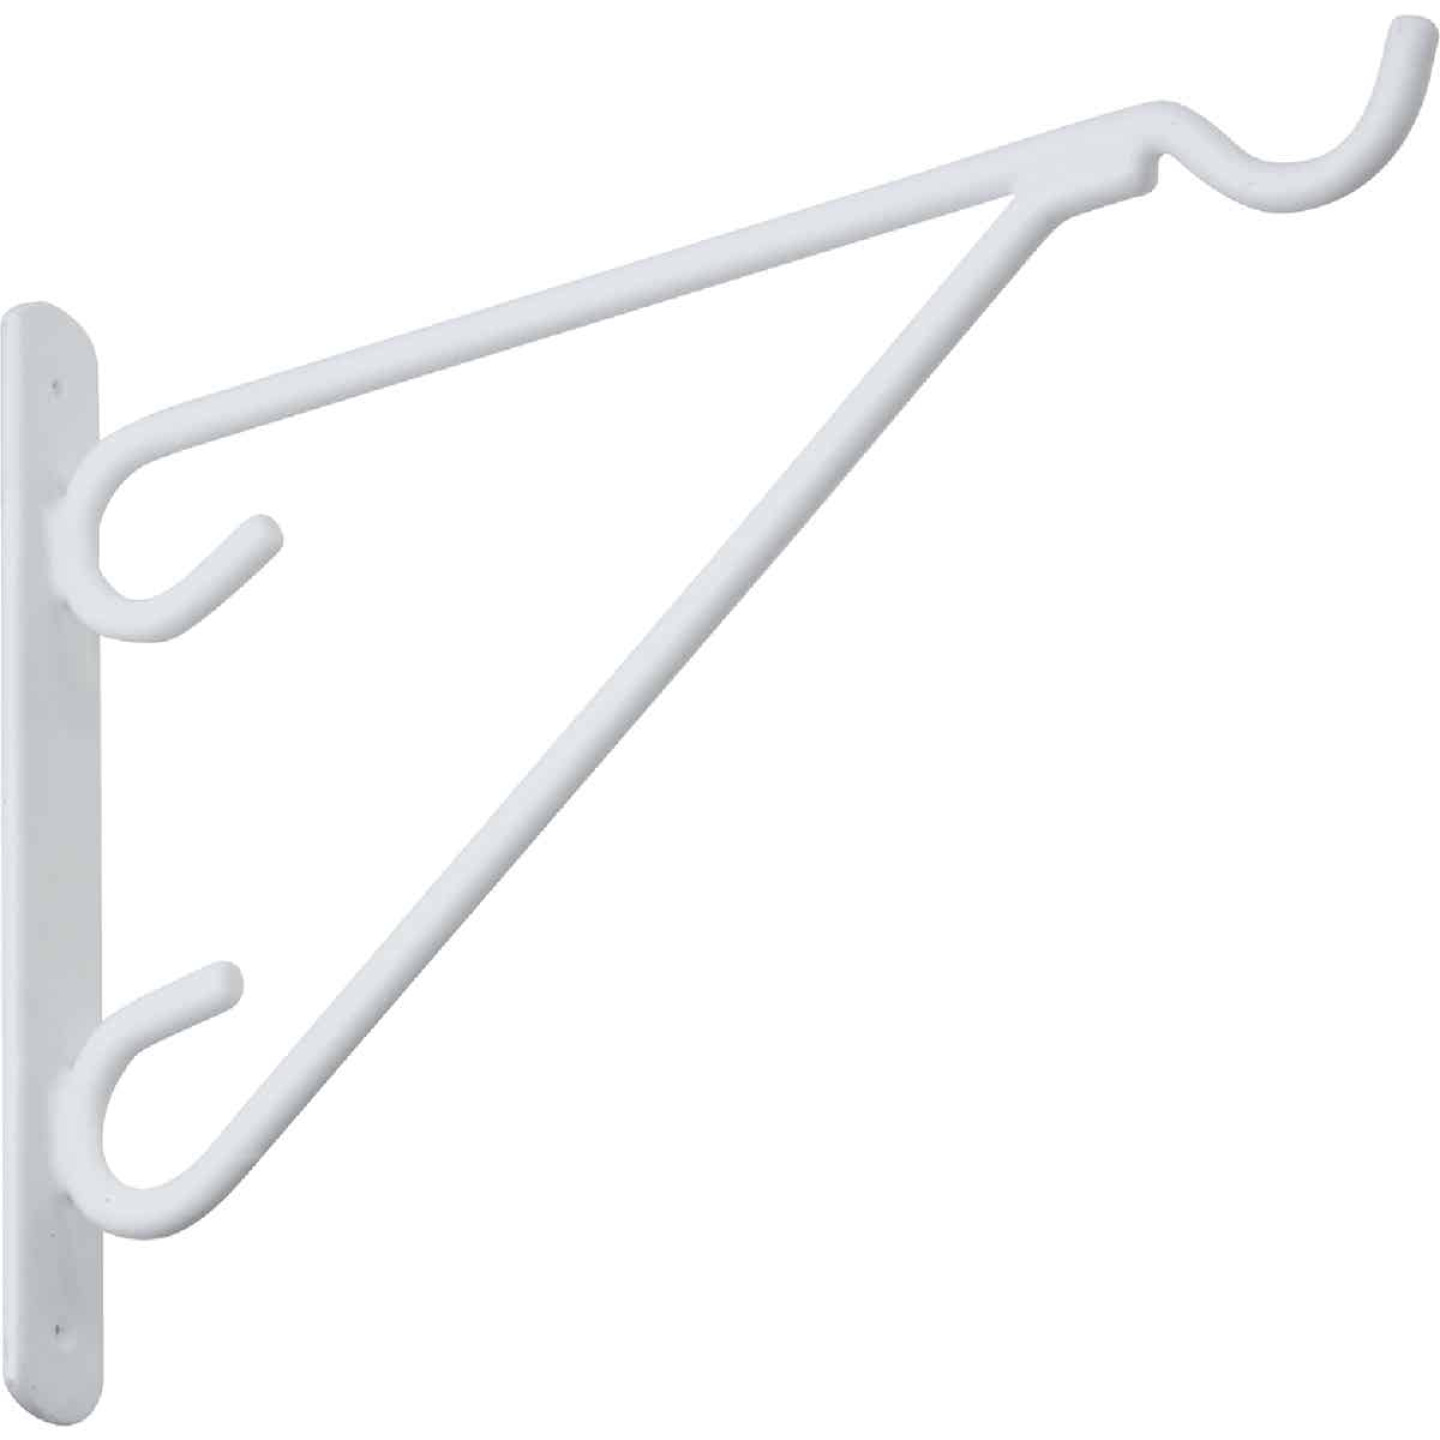 National 12 In. White Vinyl-Coated Steel Plant Hanger Bracket Image 3